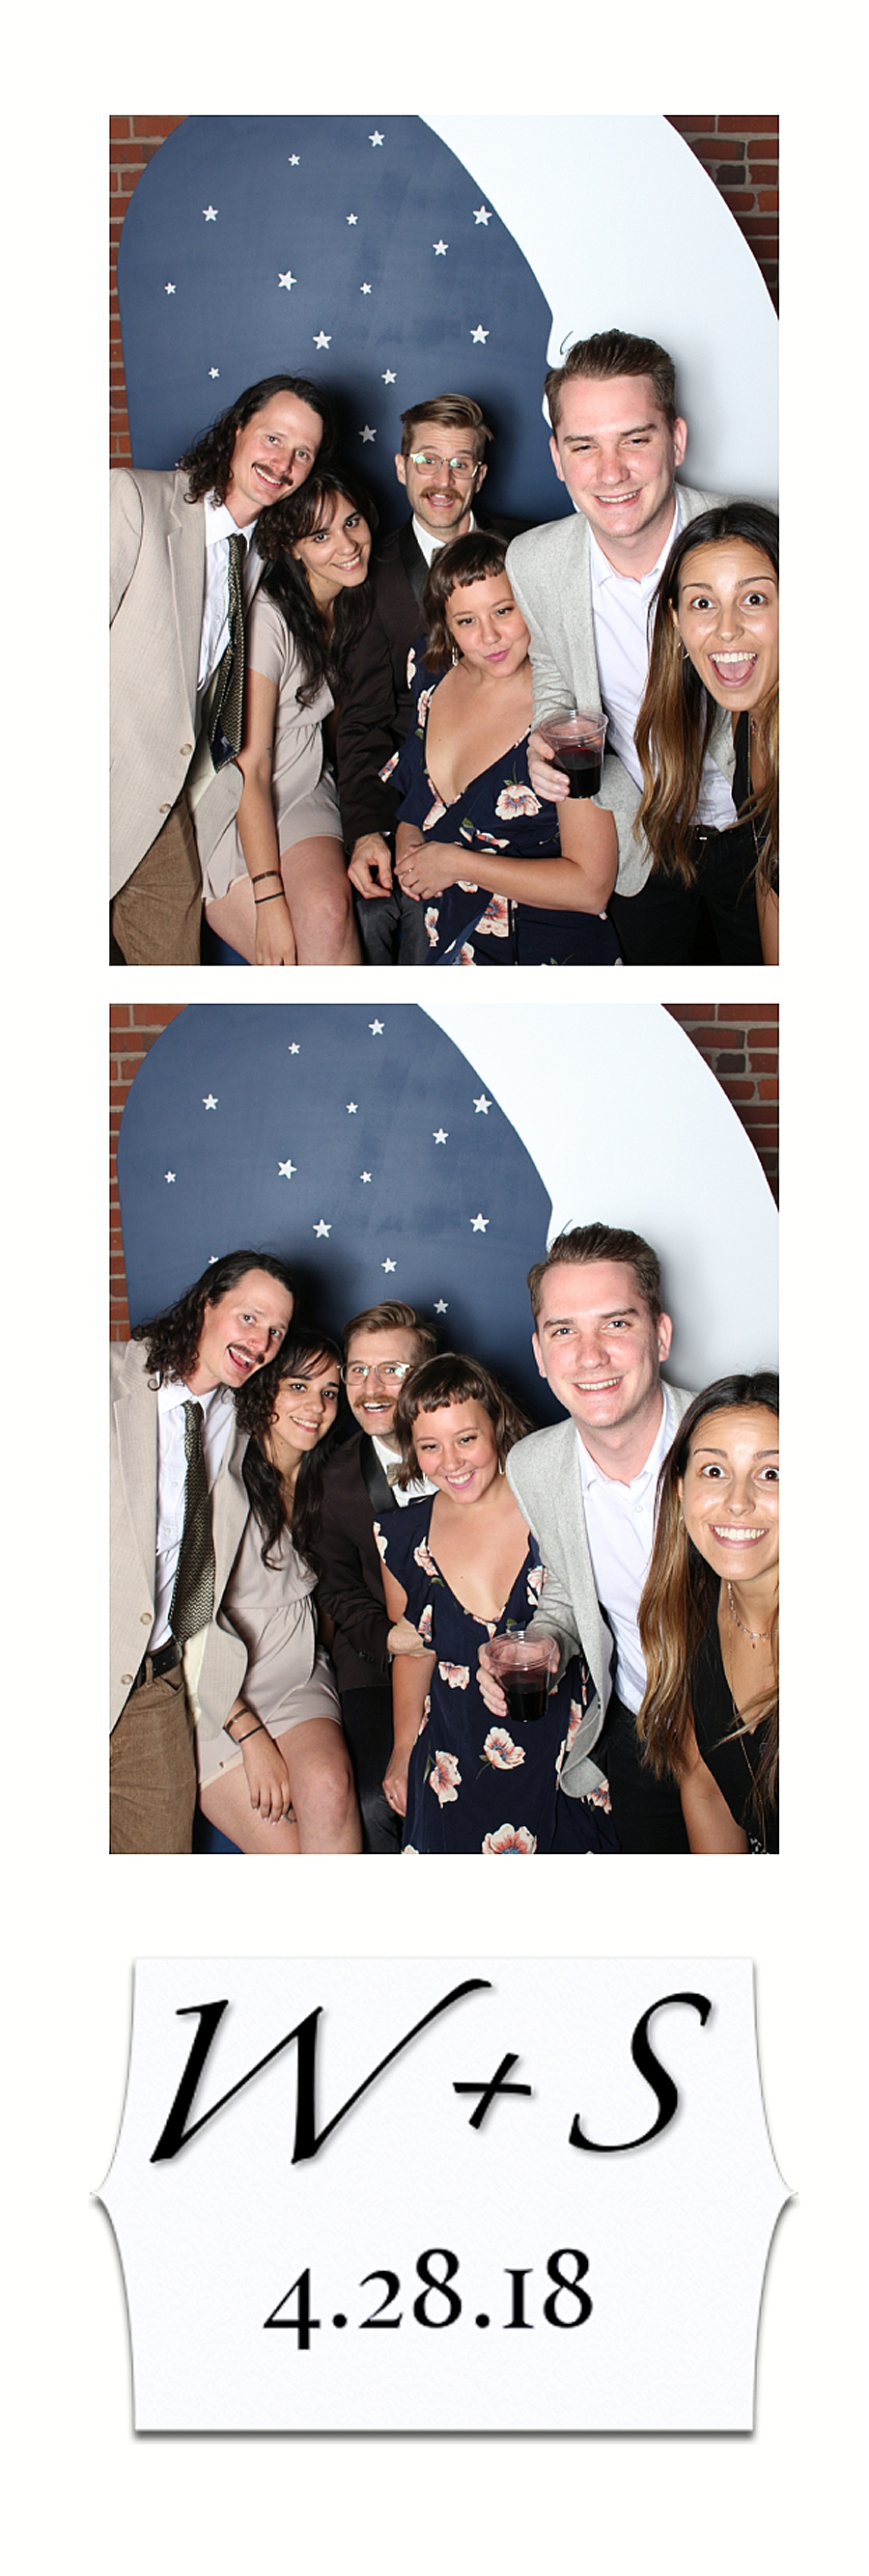 Knoxville Photo Booth_1721.jpg